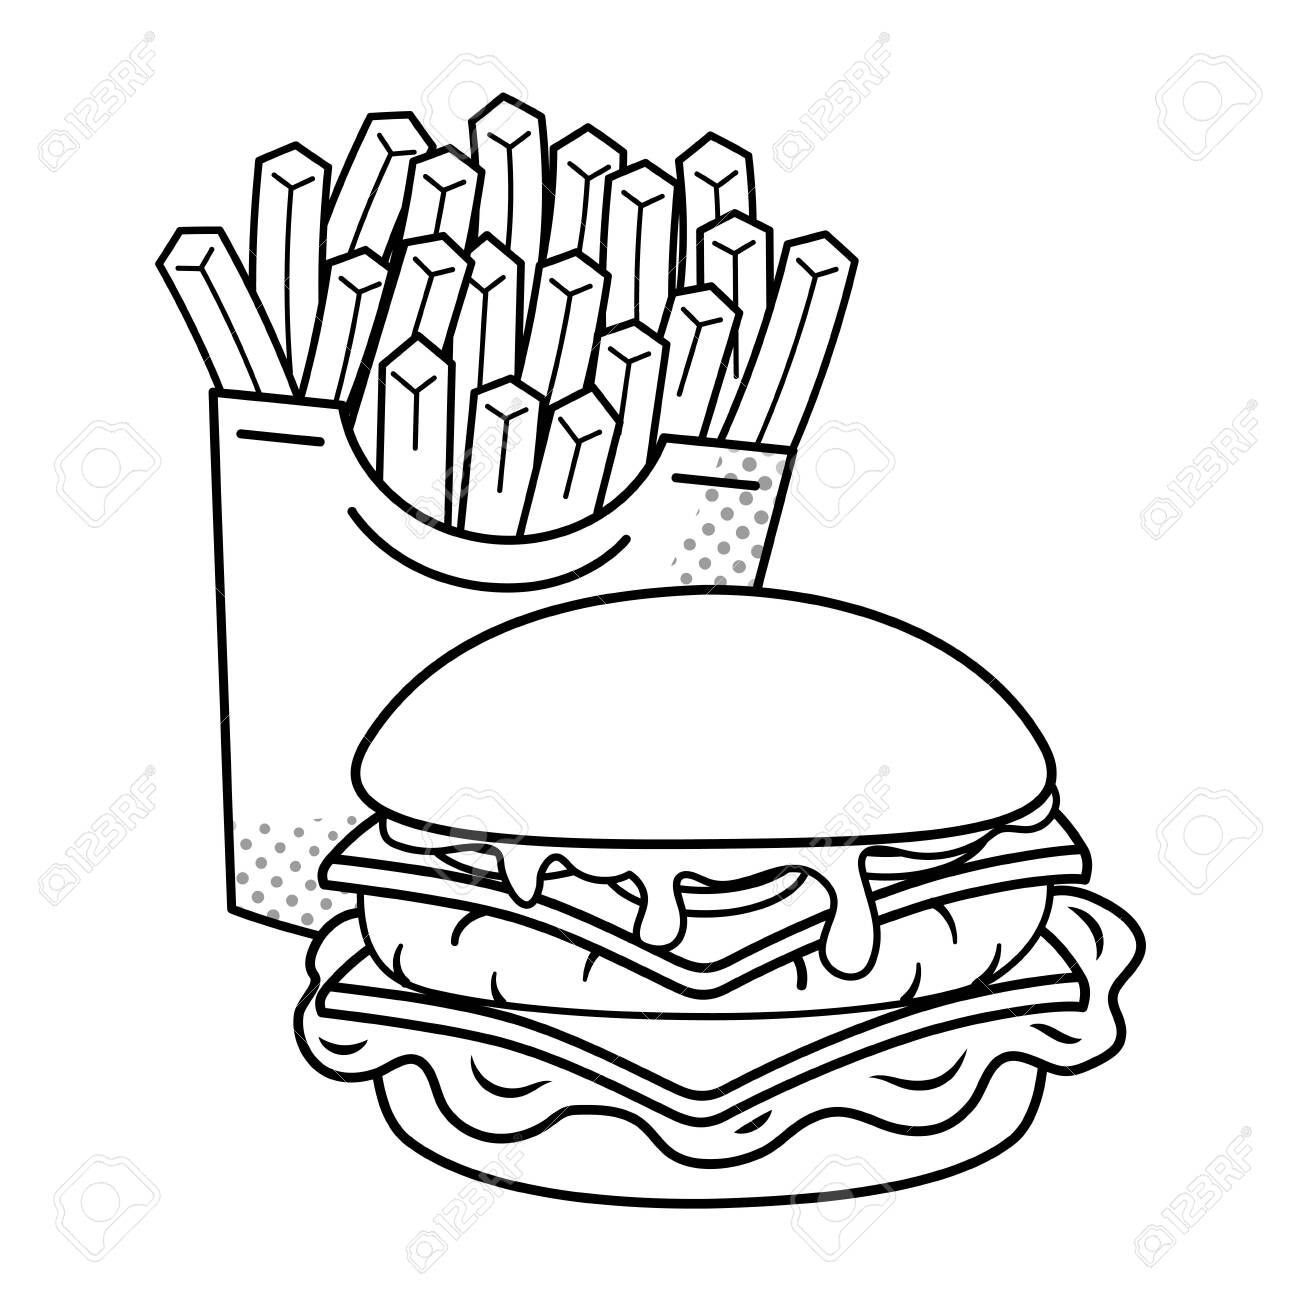 Hamburger Clipart Black And White In 2021 Clipart Black And White Black And White Cartoon Black And White